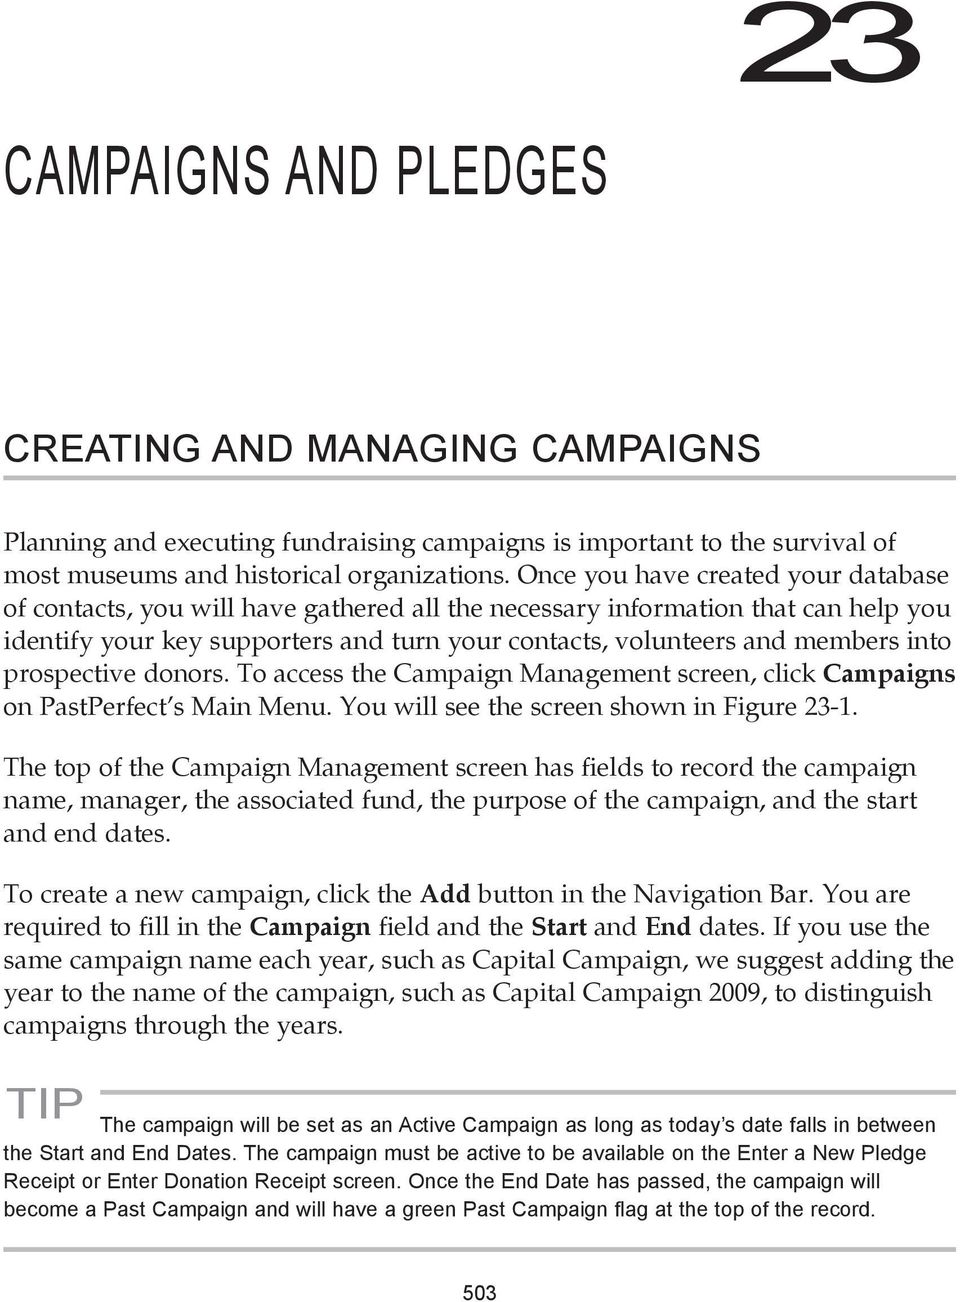 into prospective donors. To access the Campaign Management screen, click Campaigns on PastPerfect s Main Menu. You will see the screen shown in Figure 23-1.